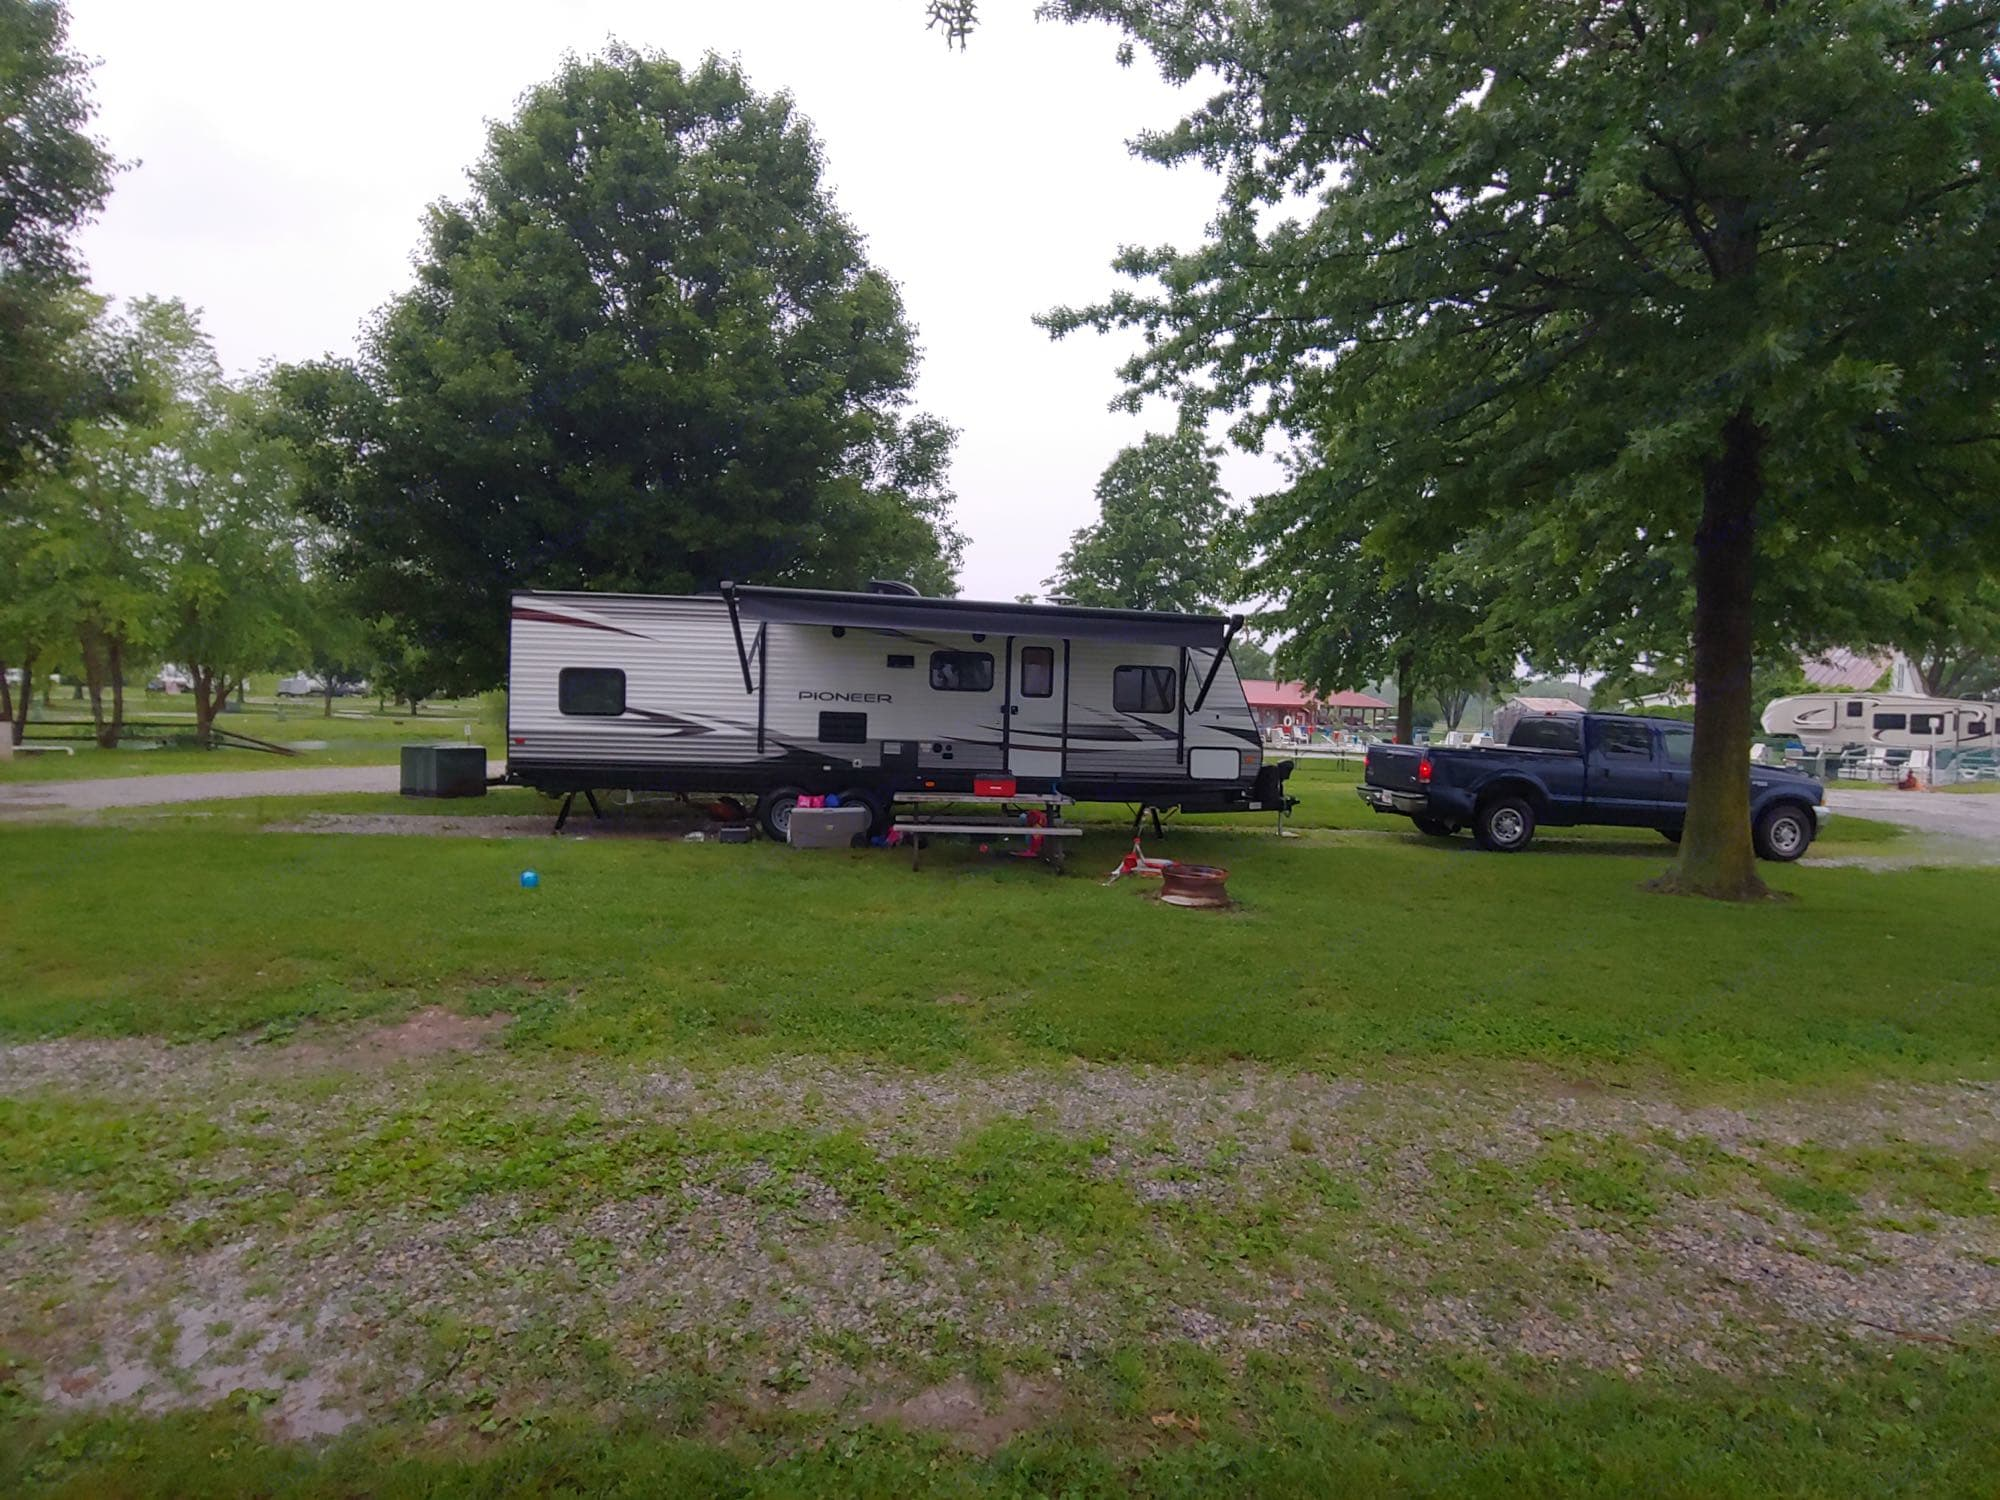 First camping trip for this rig at Little Farm on the River RV in Rising Sun, Indiana.. Heartland Pioneer 2019